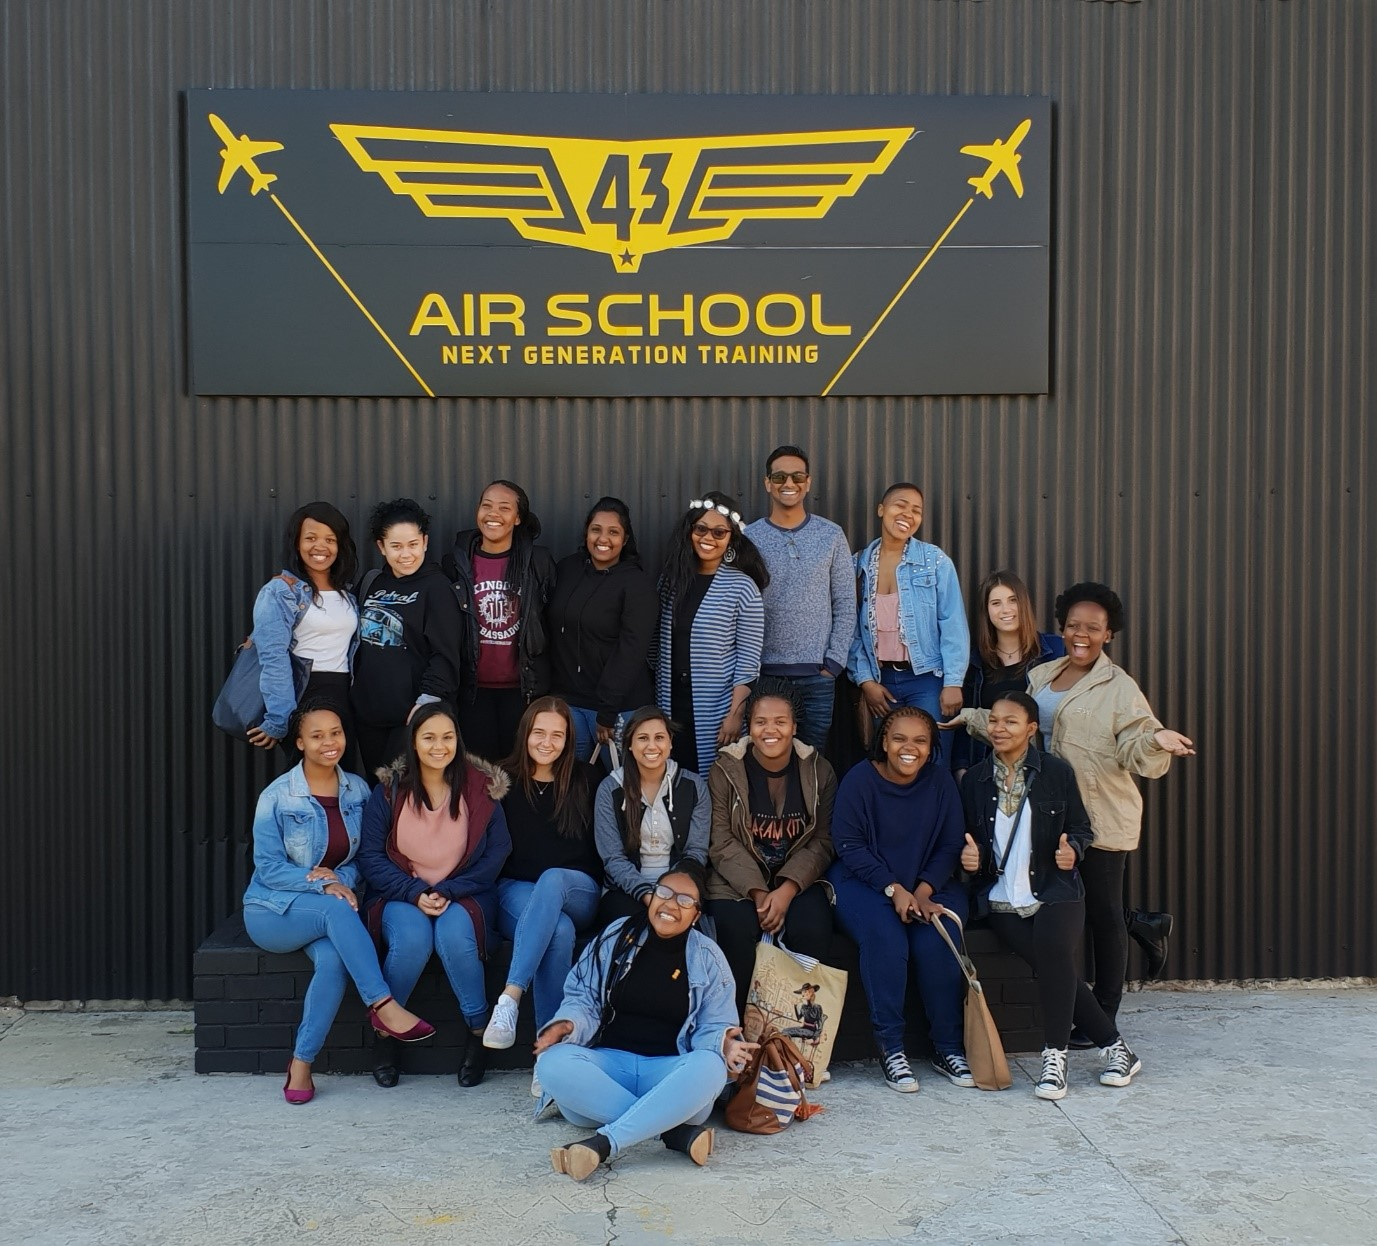 Org Psychology students visit 43 Air School